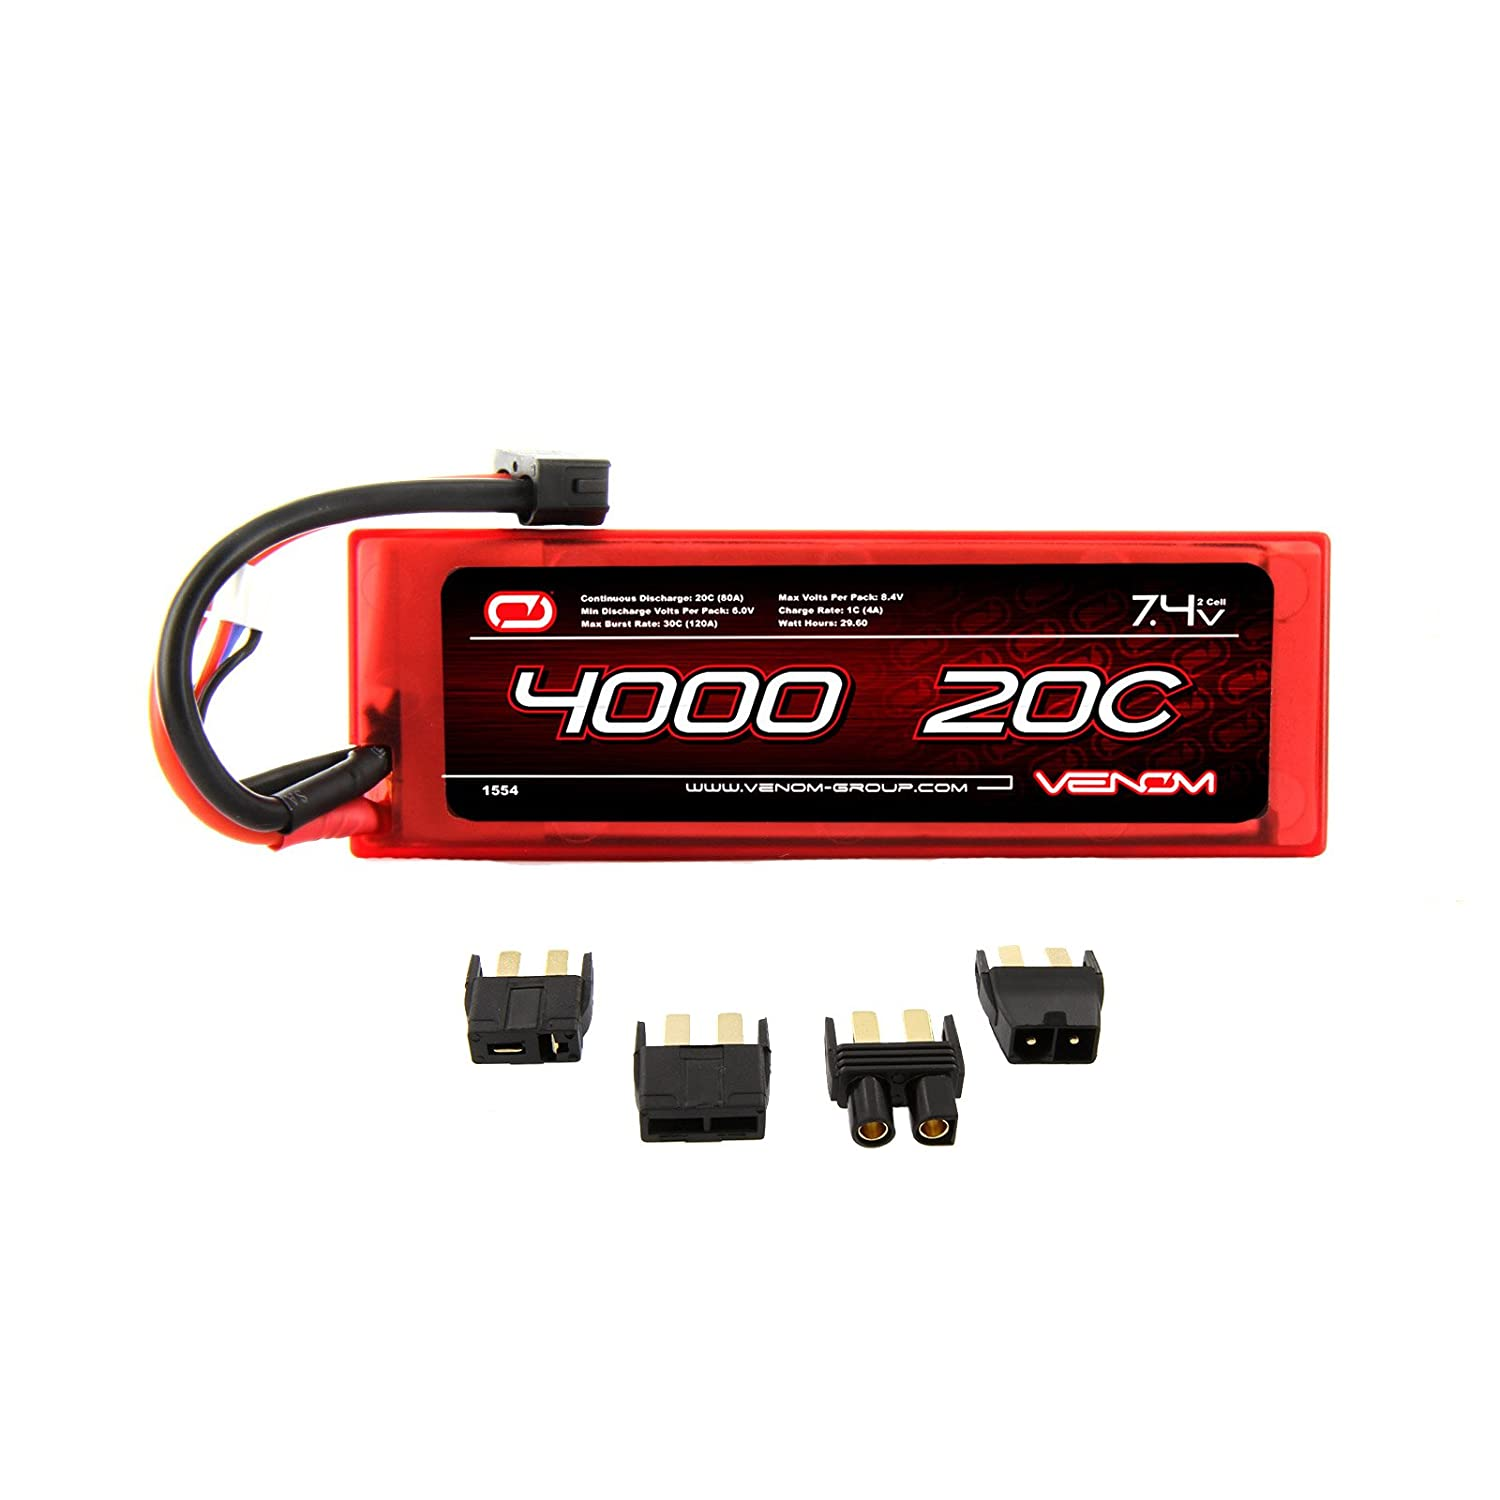 Amazon Venom 20C 2S 4000mAh 7 4V Hard Case LiPo Battery with Universal Plug EC3 Deans Traxxas Tamiya Toys & Games